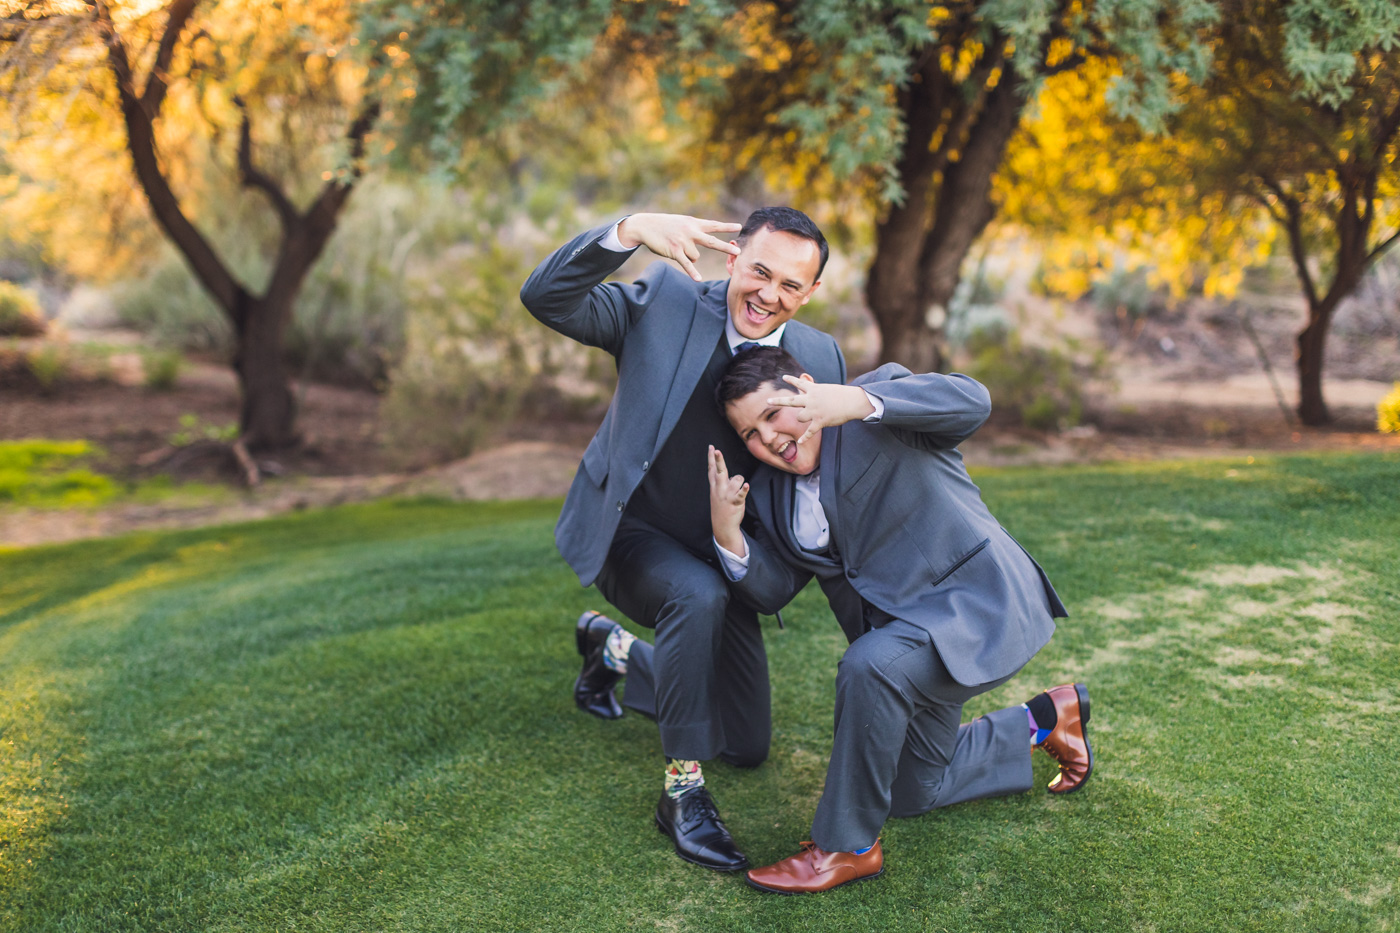 groom-and-son-have-fun-posing